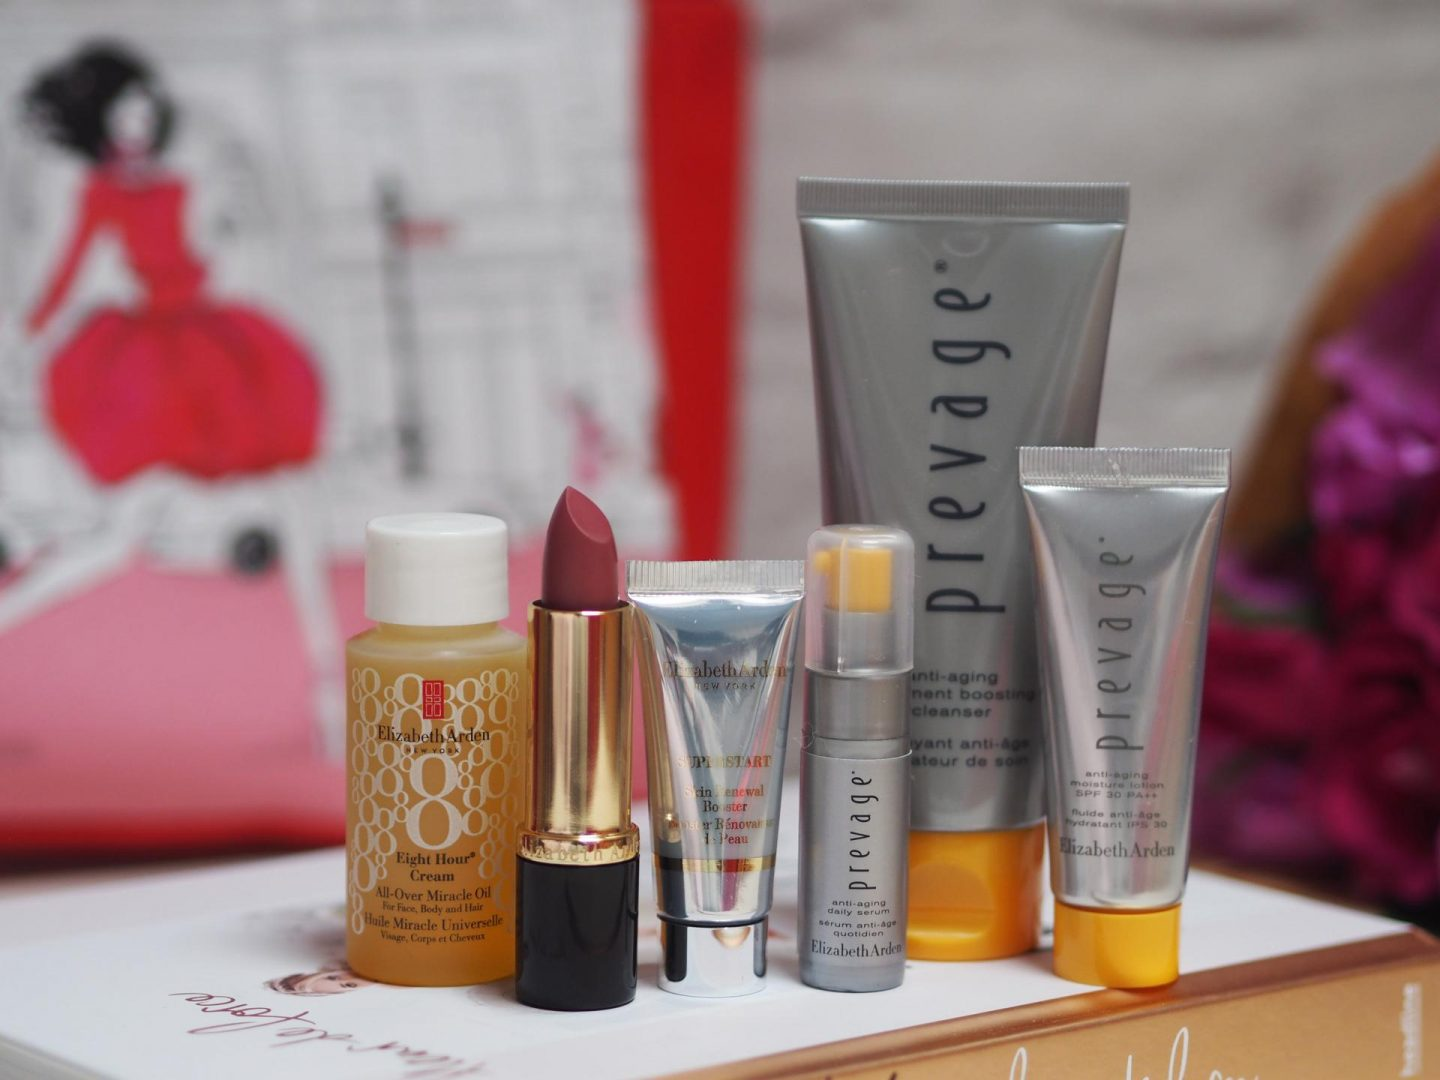 elizabeth-arden-free-gift-with-purchase-at-house-of-fraser-rachel-nicole-uk-blogger